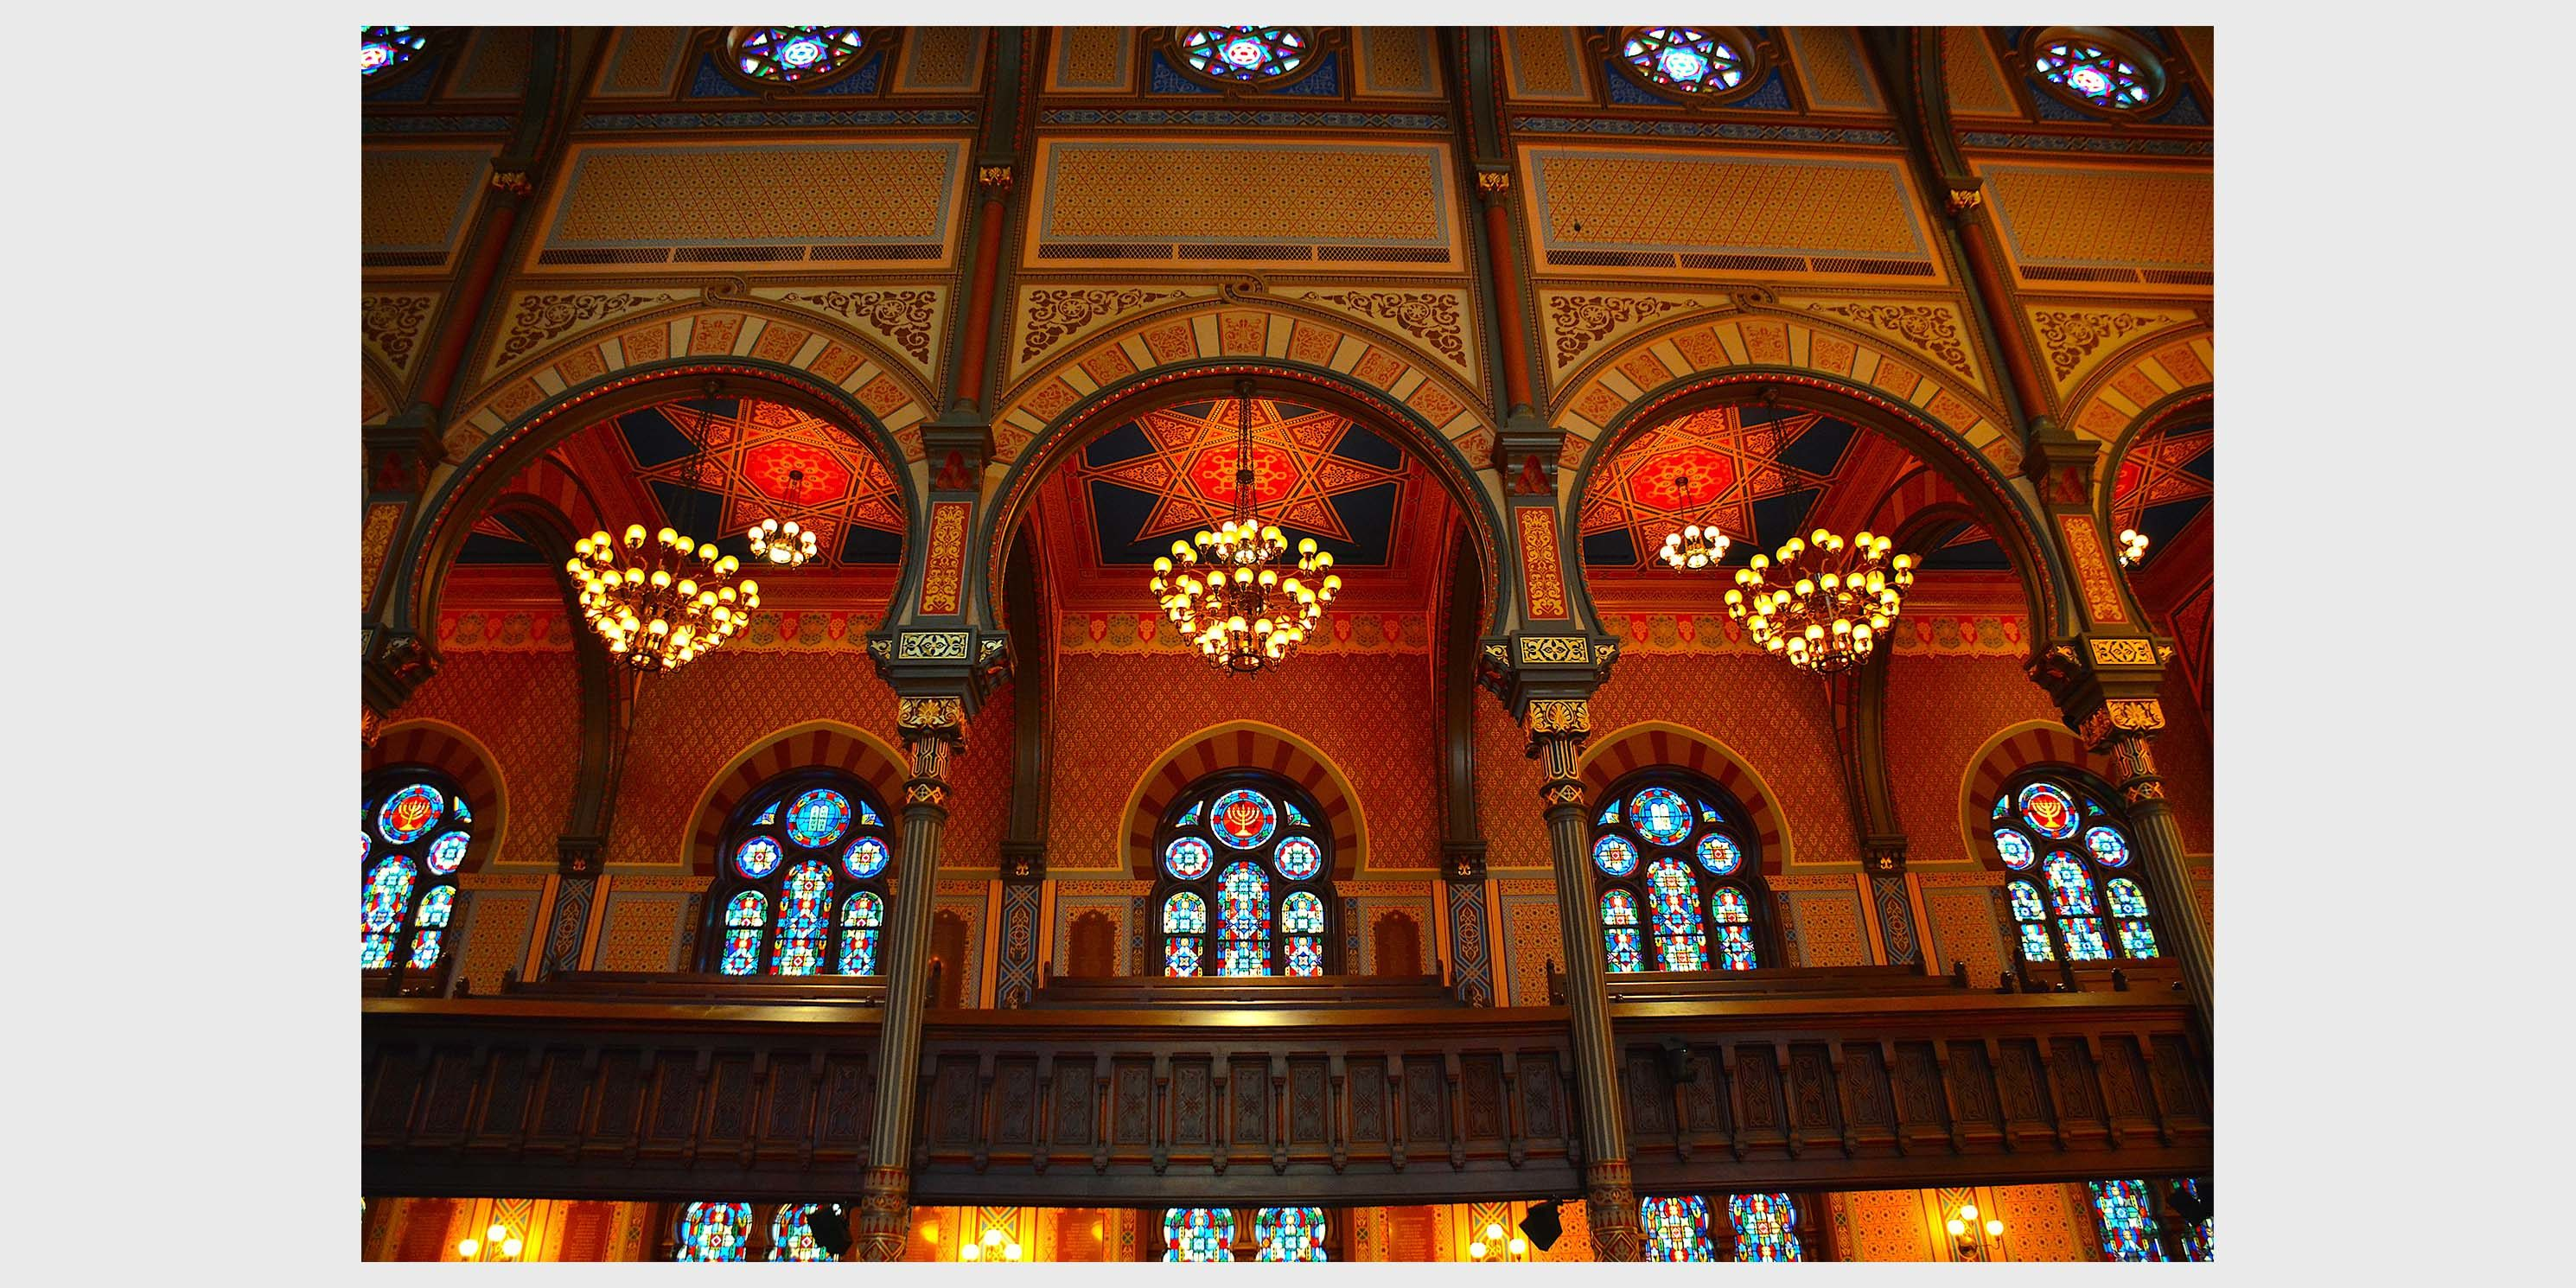 stain glass windows inside the Central Synagogue in Manhattan